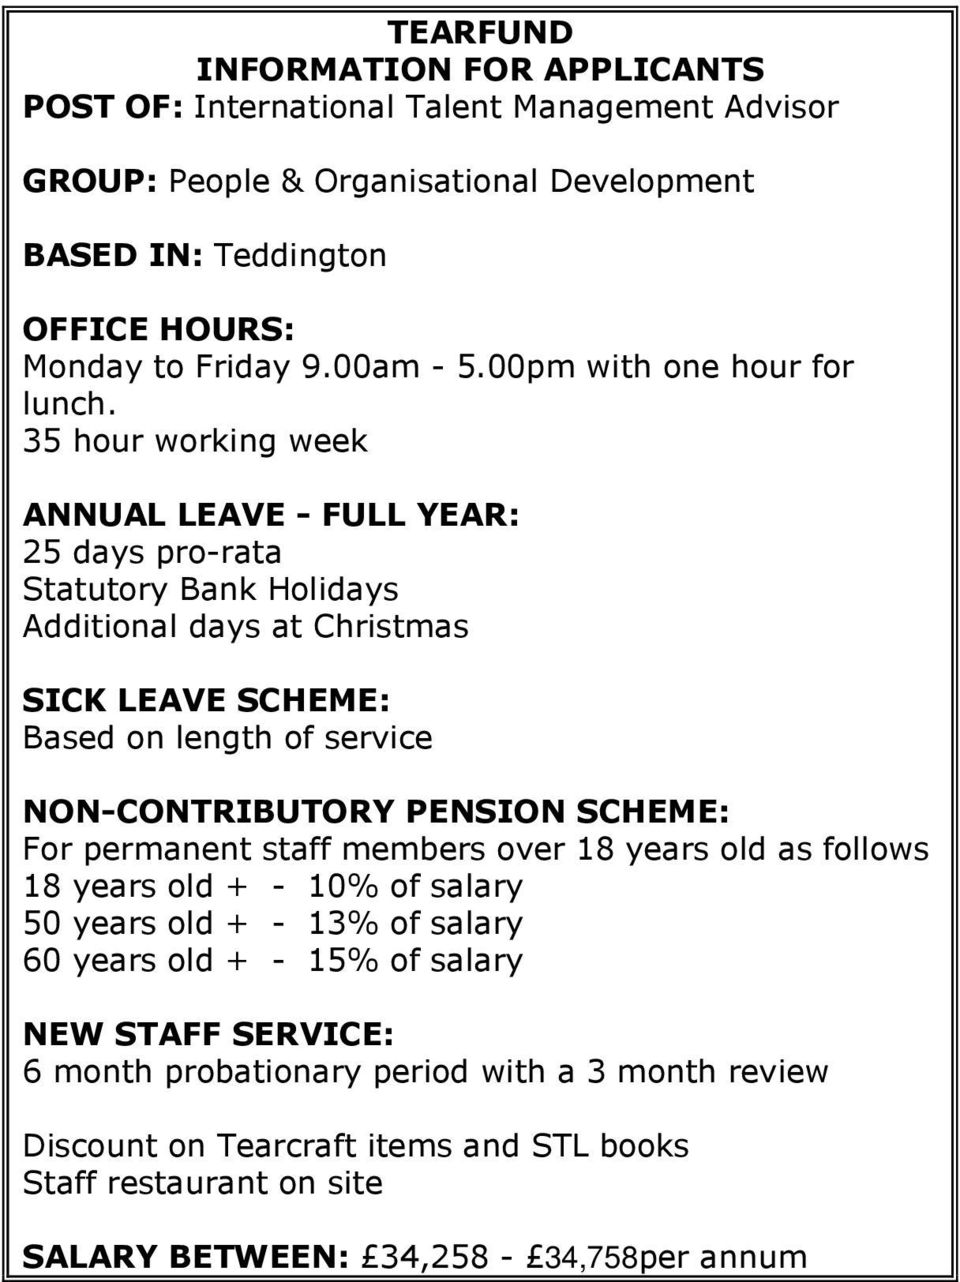 35 hour working week ANNUAL LEAVE - FULL YEAR: 25 days pro-rata Statutory Bank Holidays Additional days at Christmas SICK LEAVE SCHEME: Based on length of service NON-CONTRIBUTORY